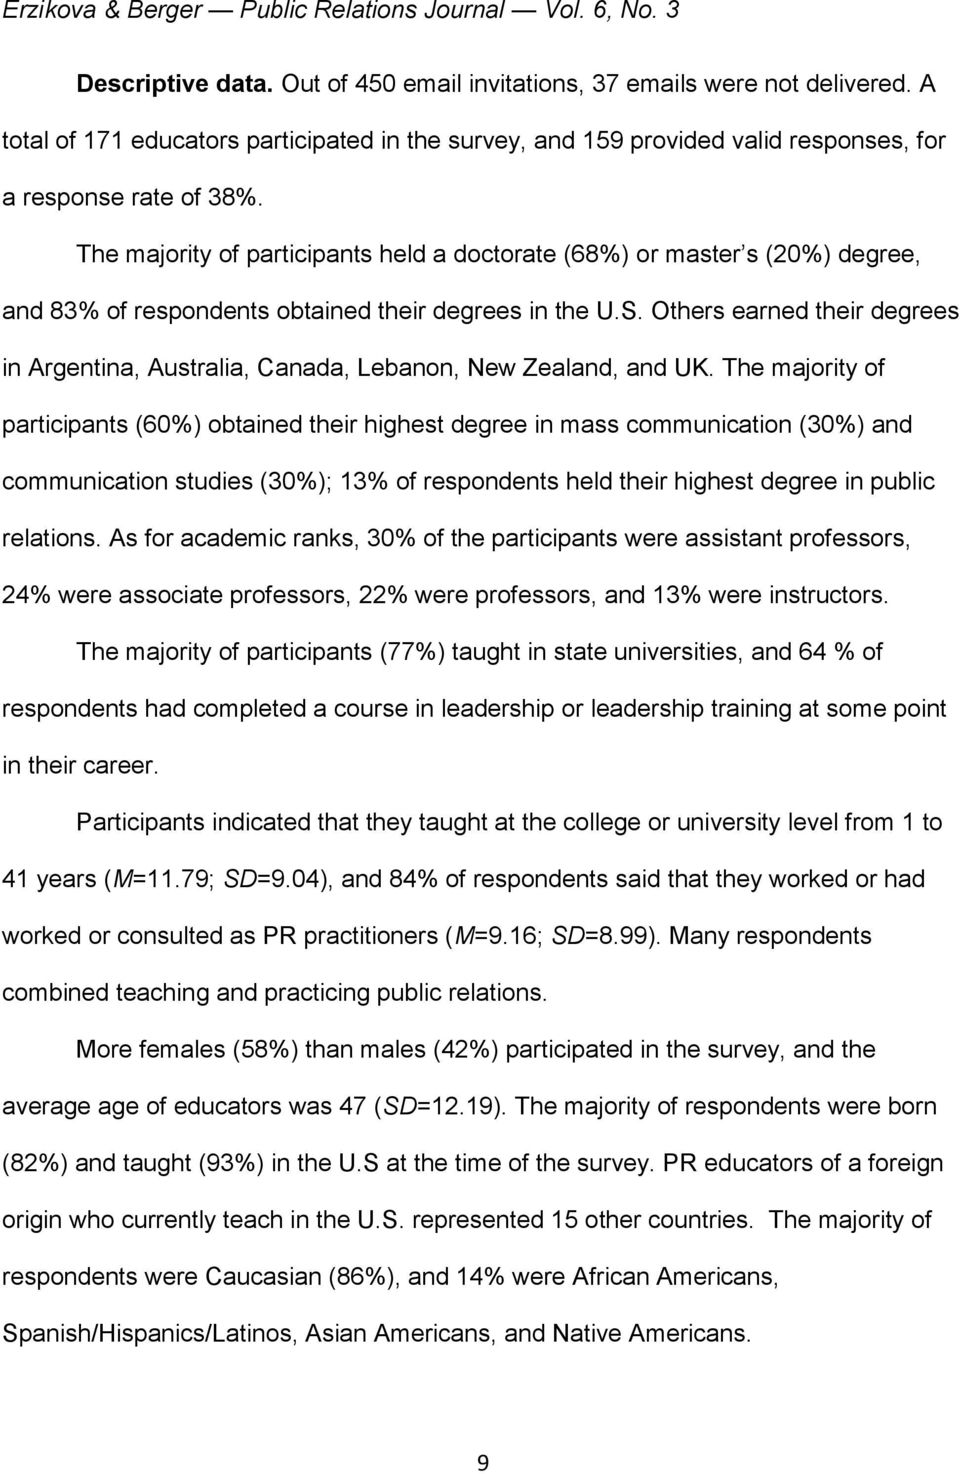 The majority of participants held a doctorate (68%) or master s (20%) degree, and 83% of respondents obtained their degrees in the U.S.